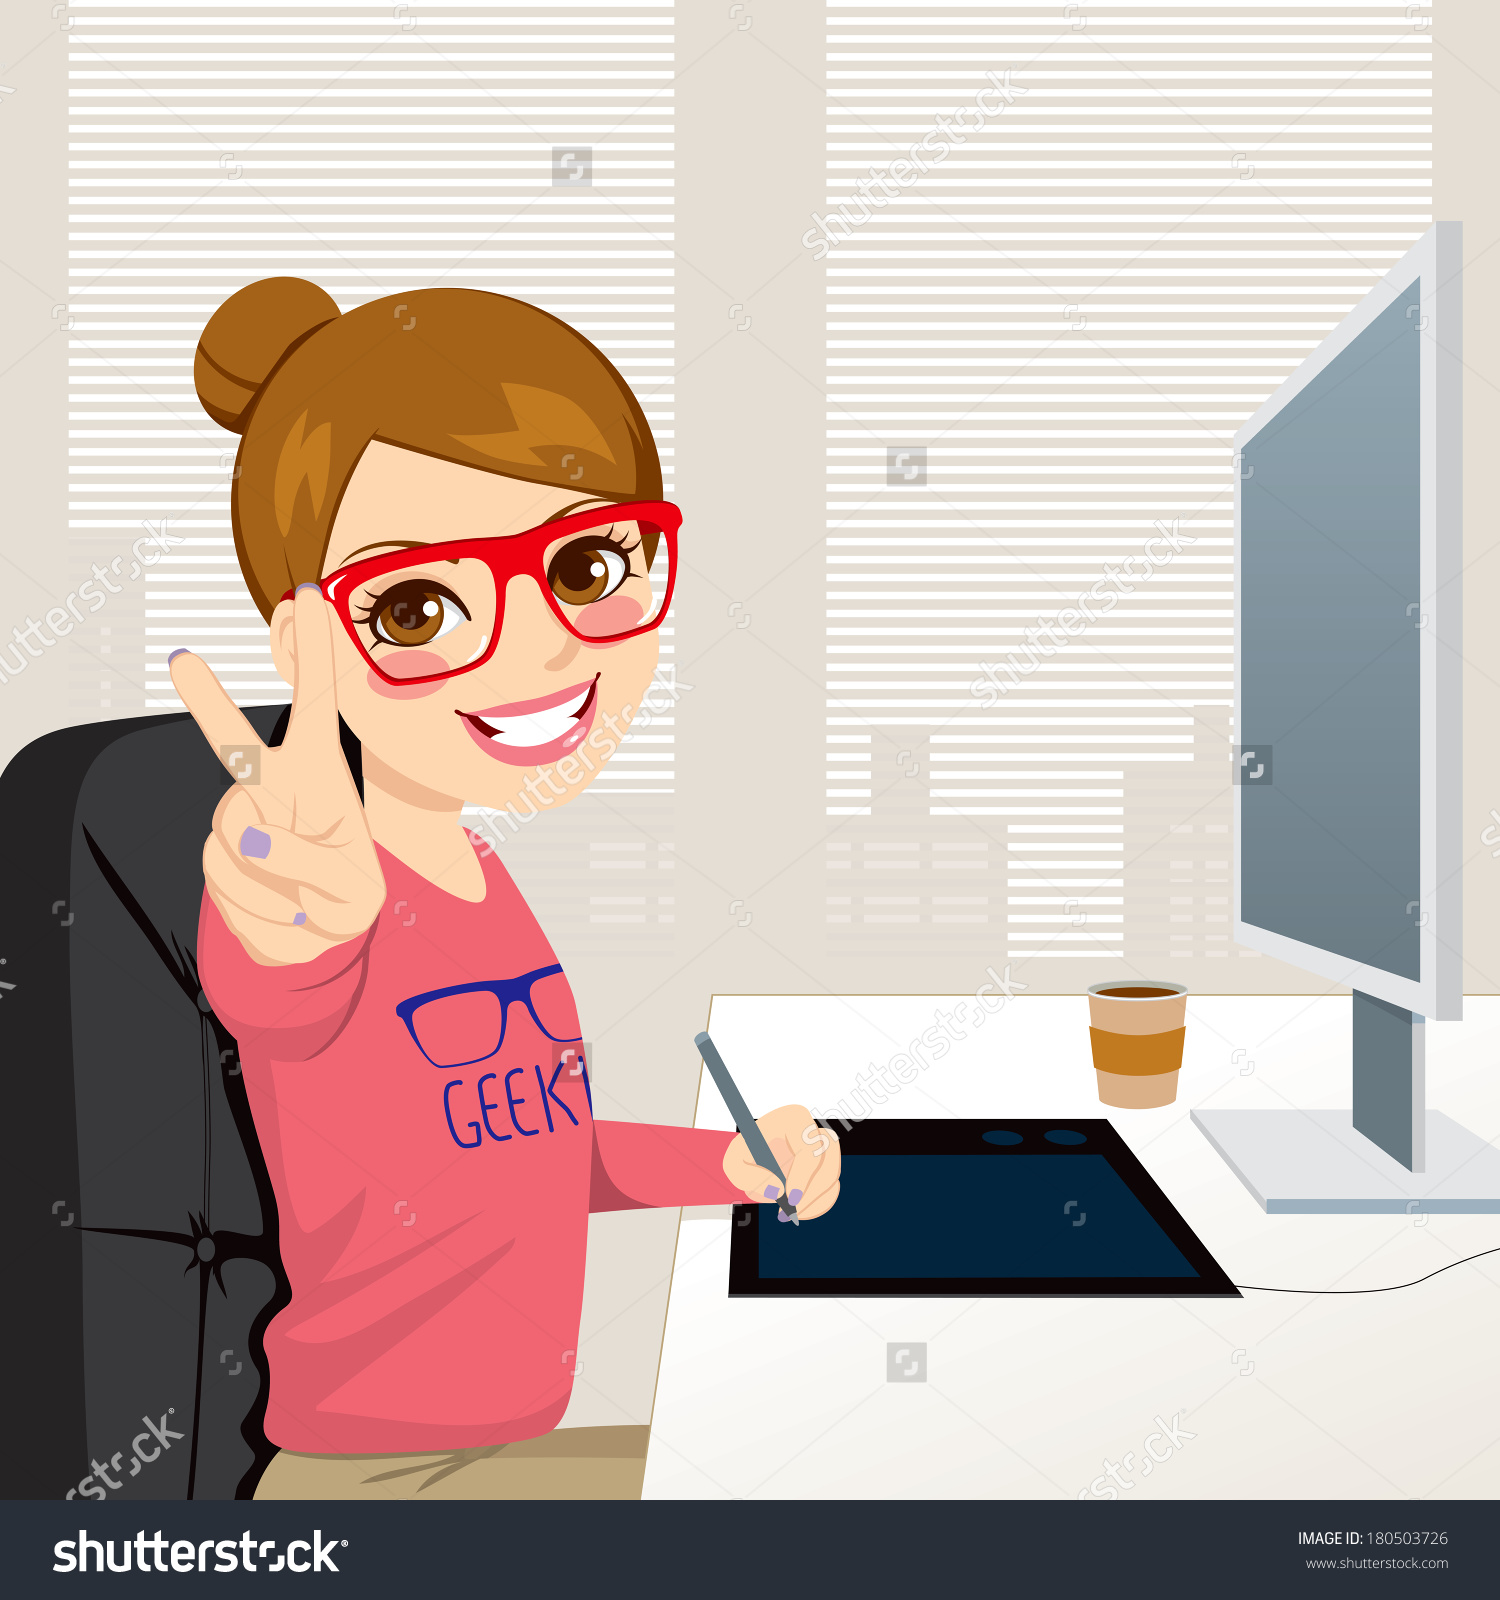 Girl working clipart.